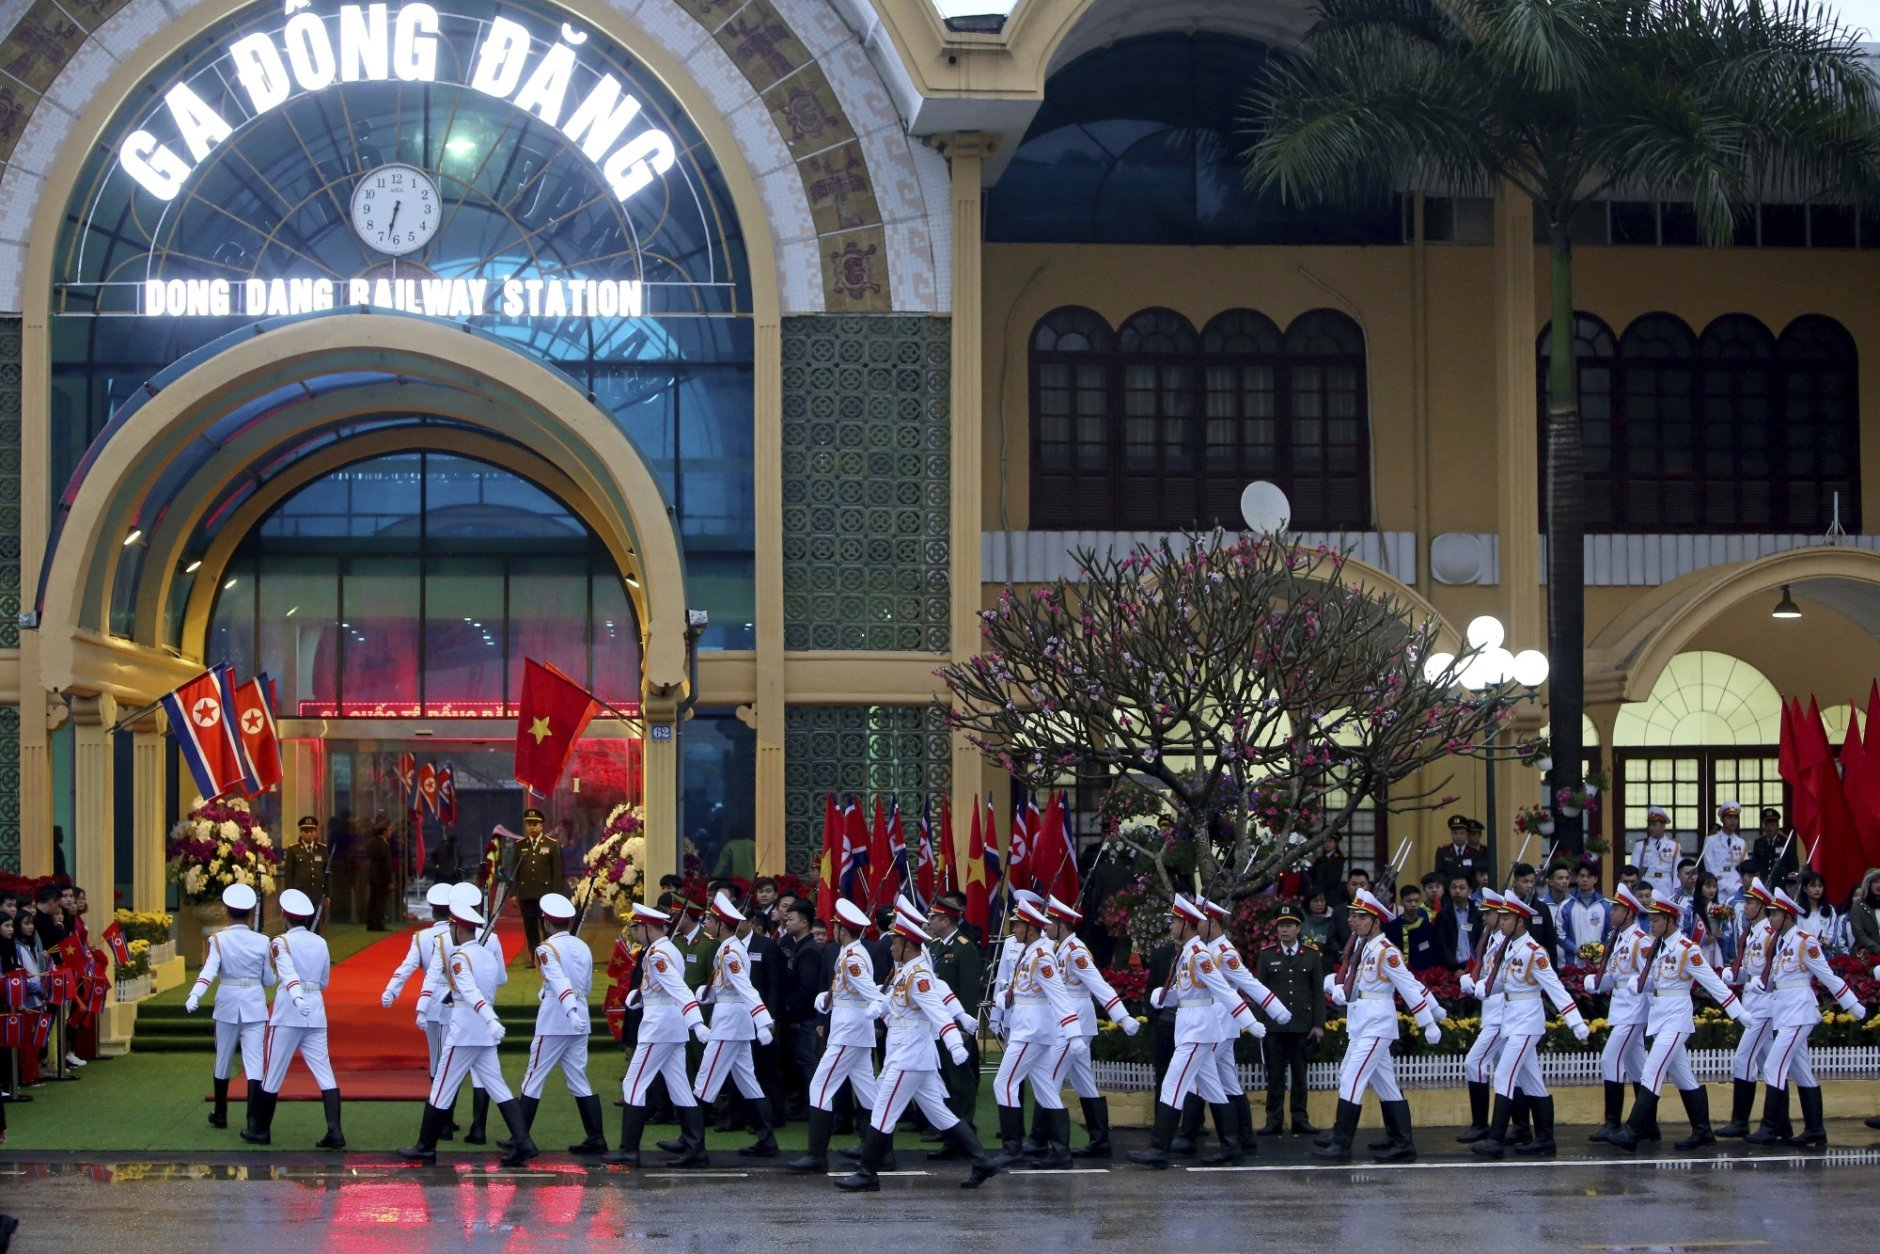 Honor guard arrive at the Dong Dang railway station in Dong Dang, Vietnam, Tuesday, Feb. 26, 2019, ahead of the arrival of North Korean leader Kim Jong Un for his second summit with U.S. President Donald Trump. (AP Photo/Minh Hoang)